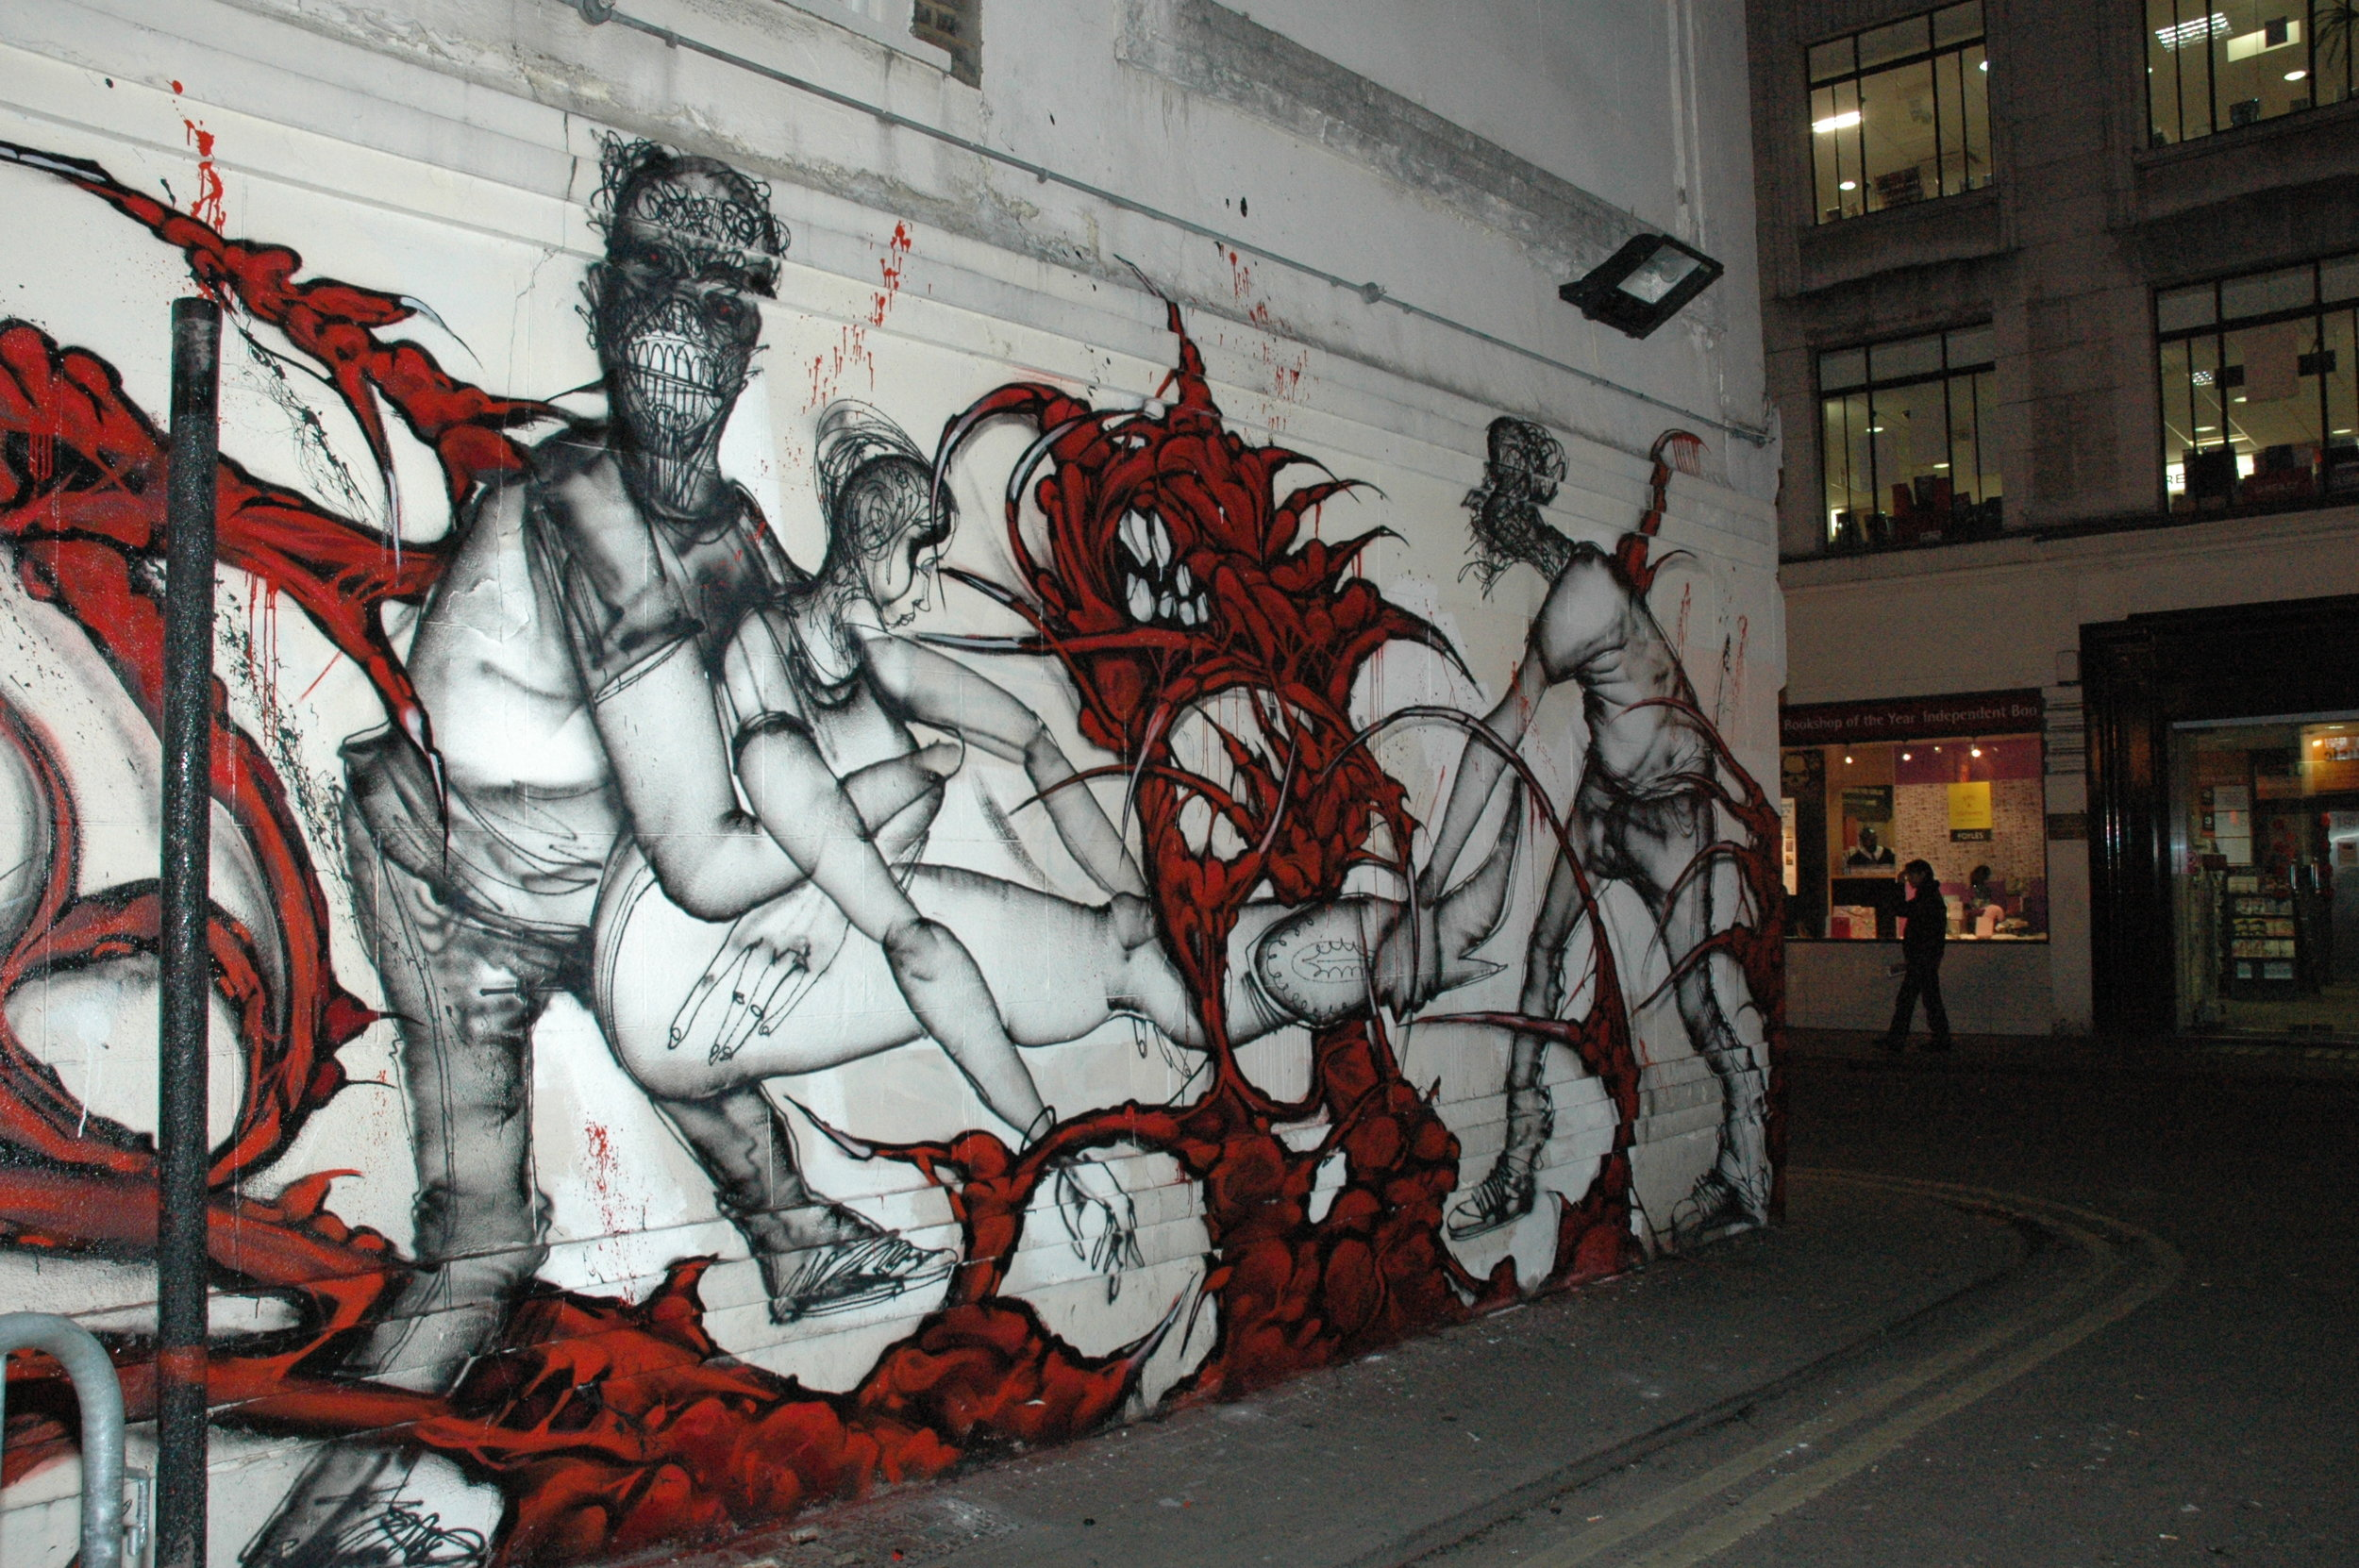 David Choe x Saber mural collaboration for Going Nowhere Fast show in London 2012